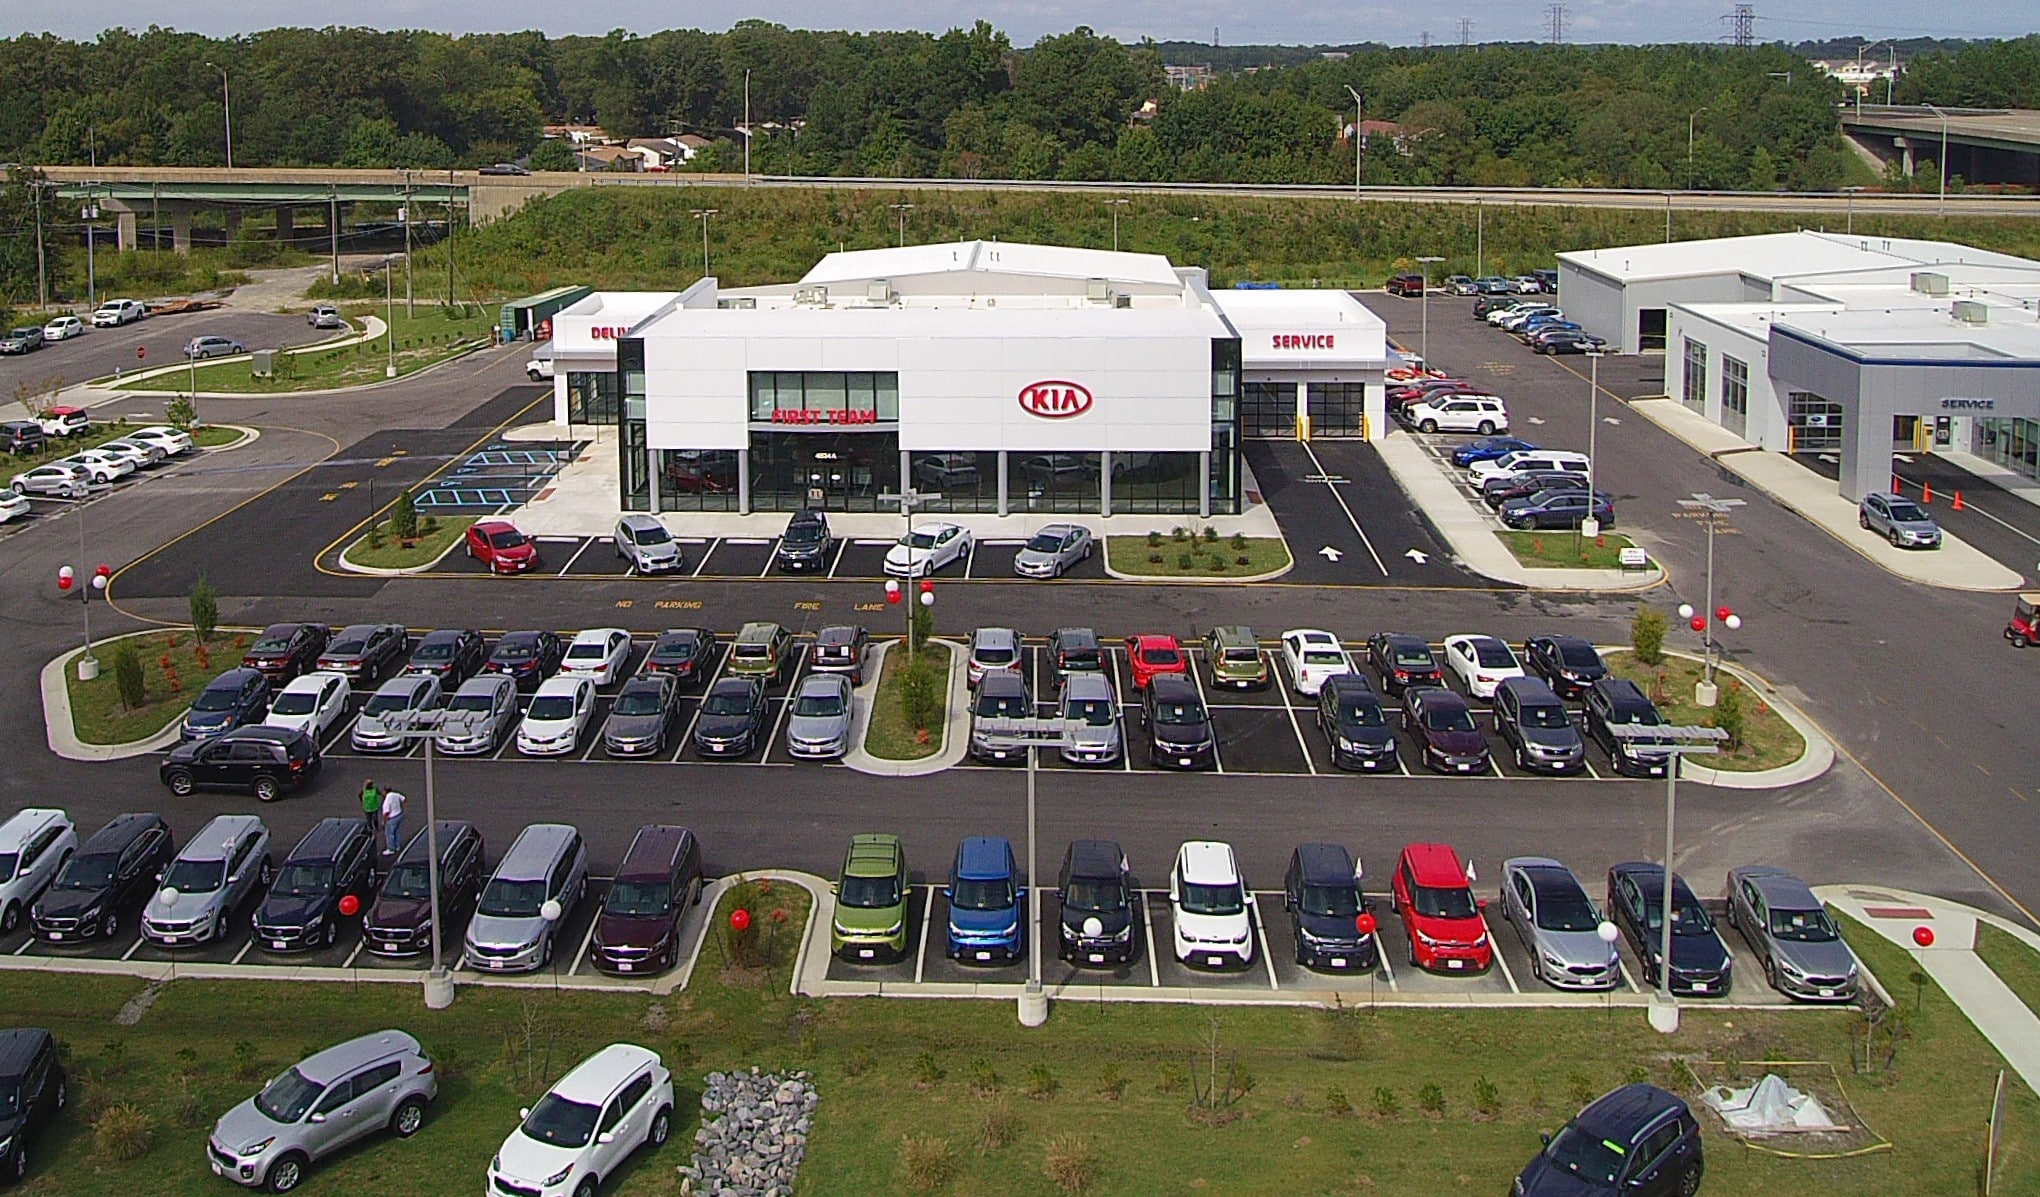 First Team Kia Offers A Full Selection Of Services Including: